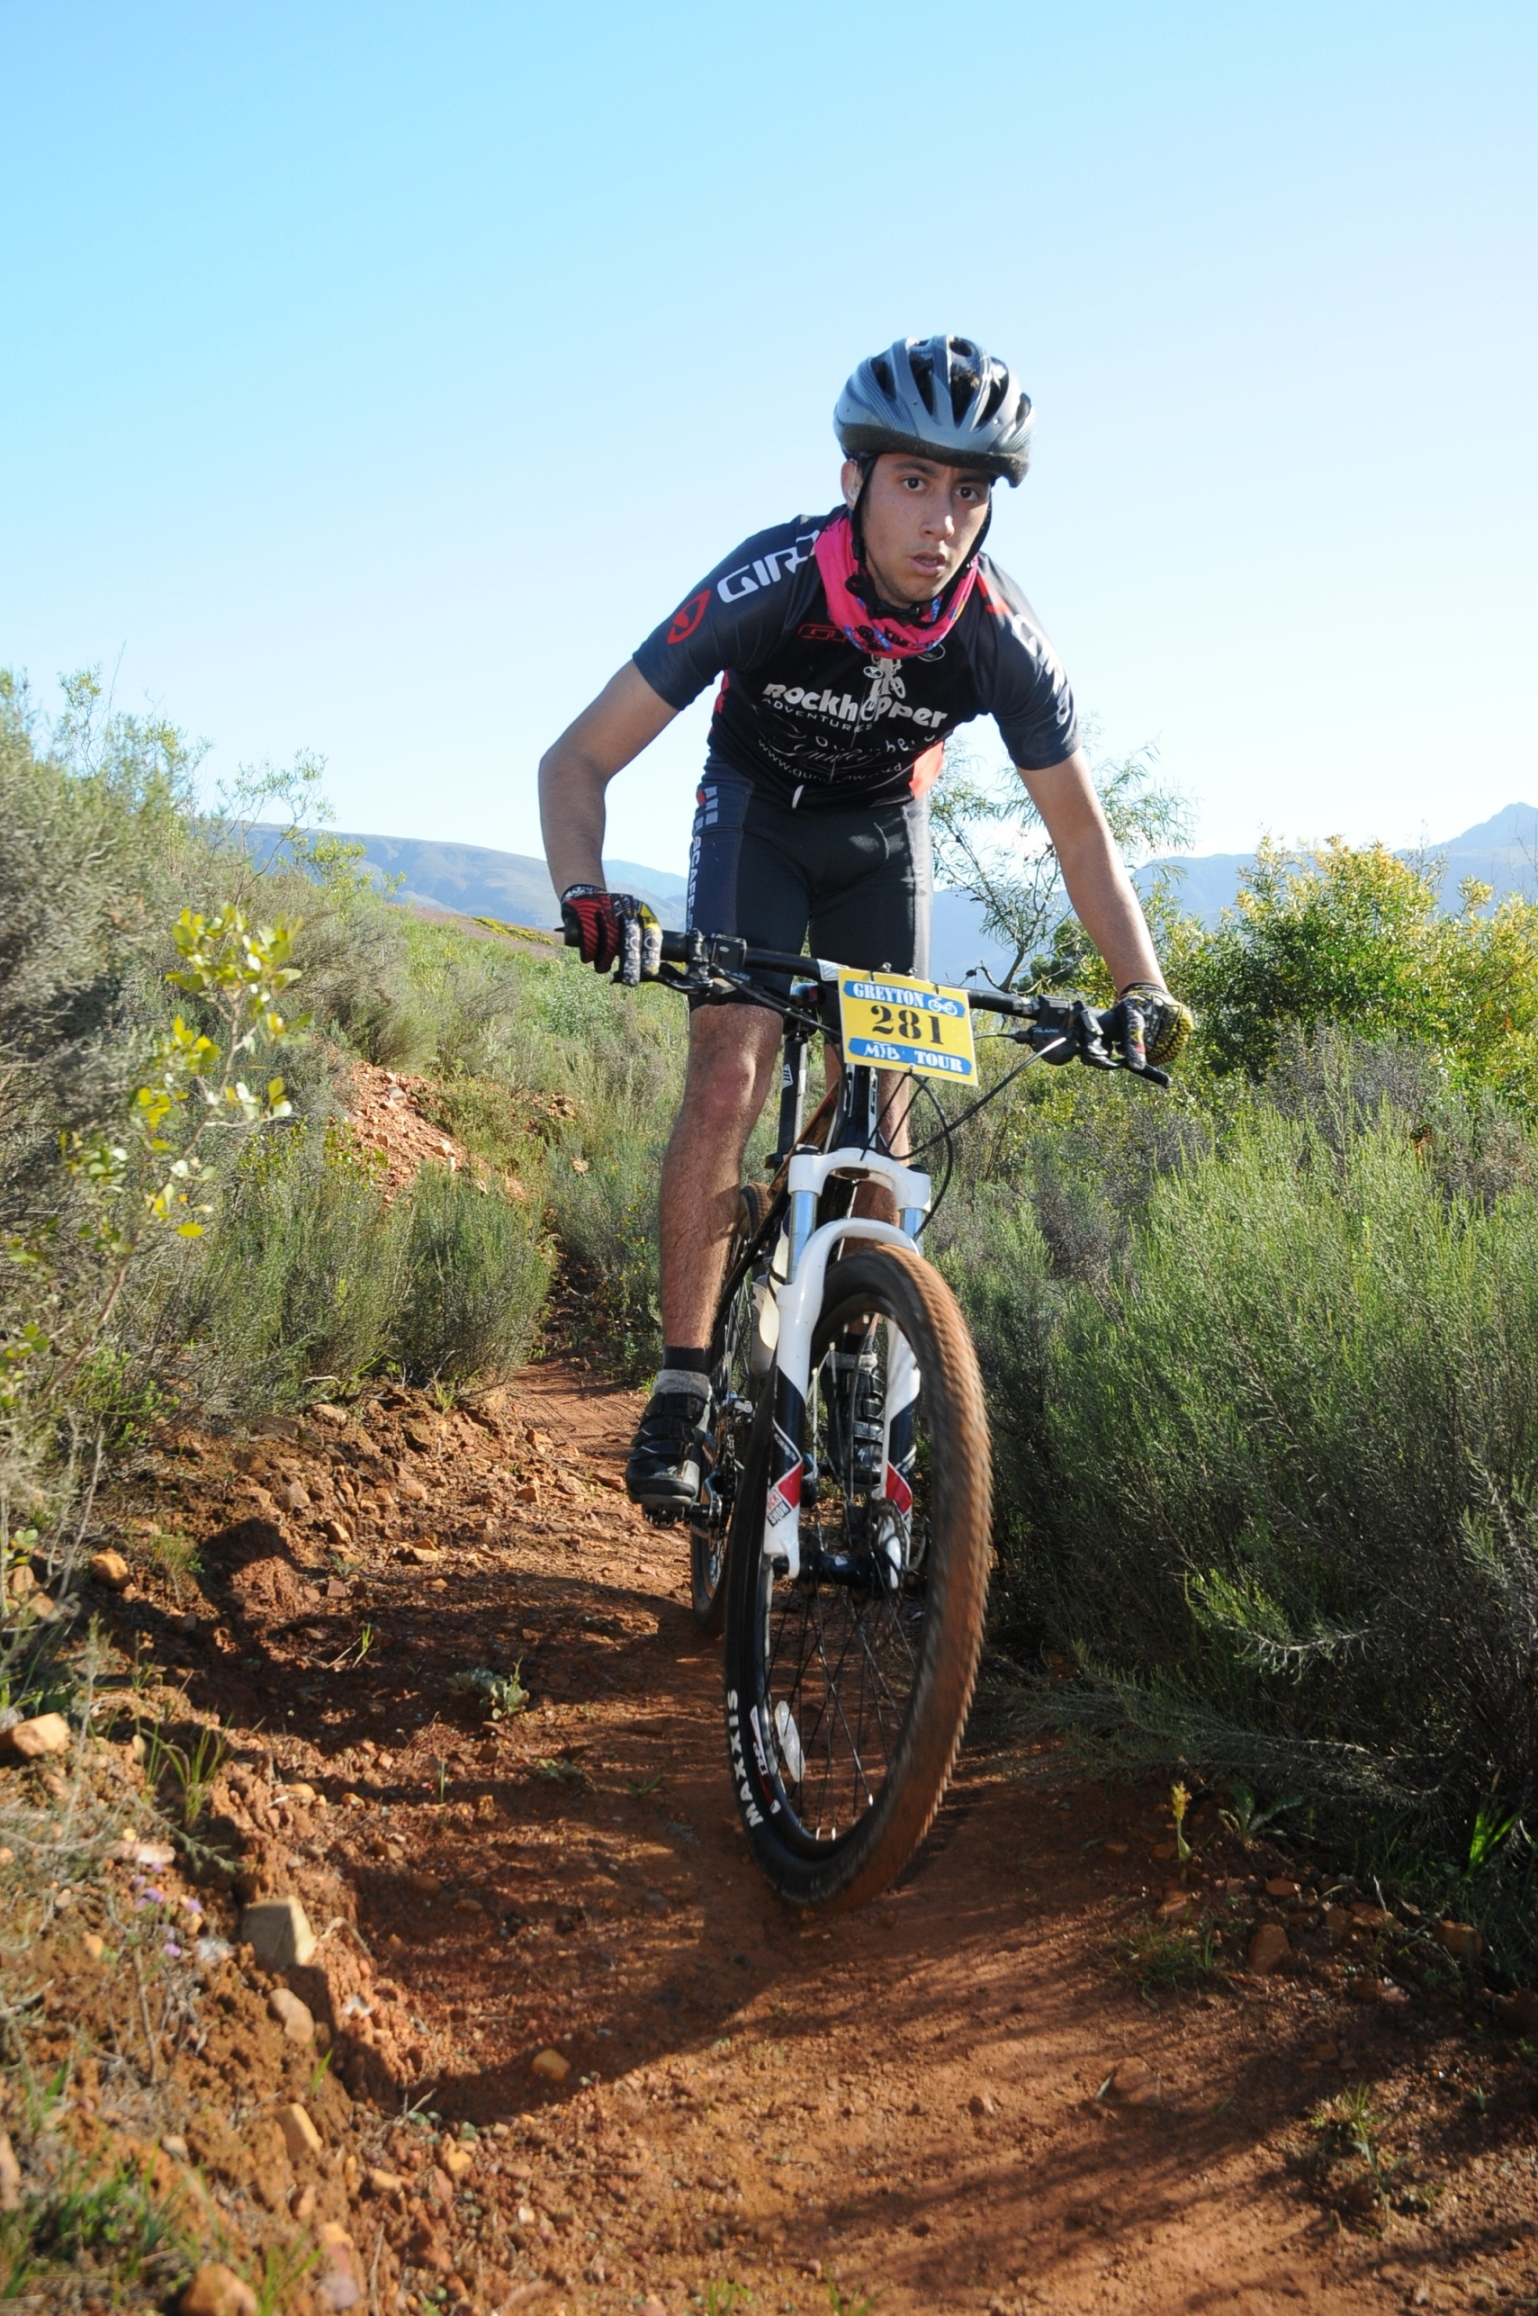 Nineteen year old Caleb Henderson will get to fulfil his dream on Monday, 02 November 2015 when he toes the line to partake in the FNB Wines2Whales (W2W) Mountain Bike (MTB) Ride that will start at the picturesque Lourensford Wine Estate (Somerset West) on Monday, 02 November 2015.  Photo Credit:  Jetline Action Photo